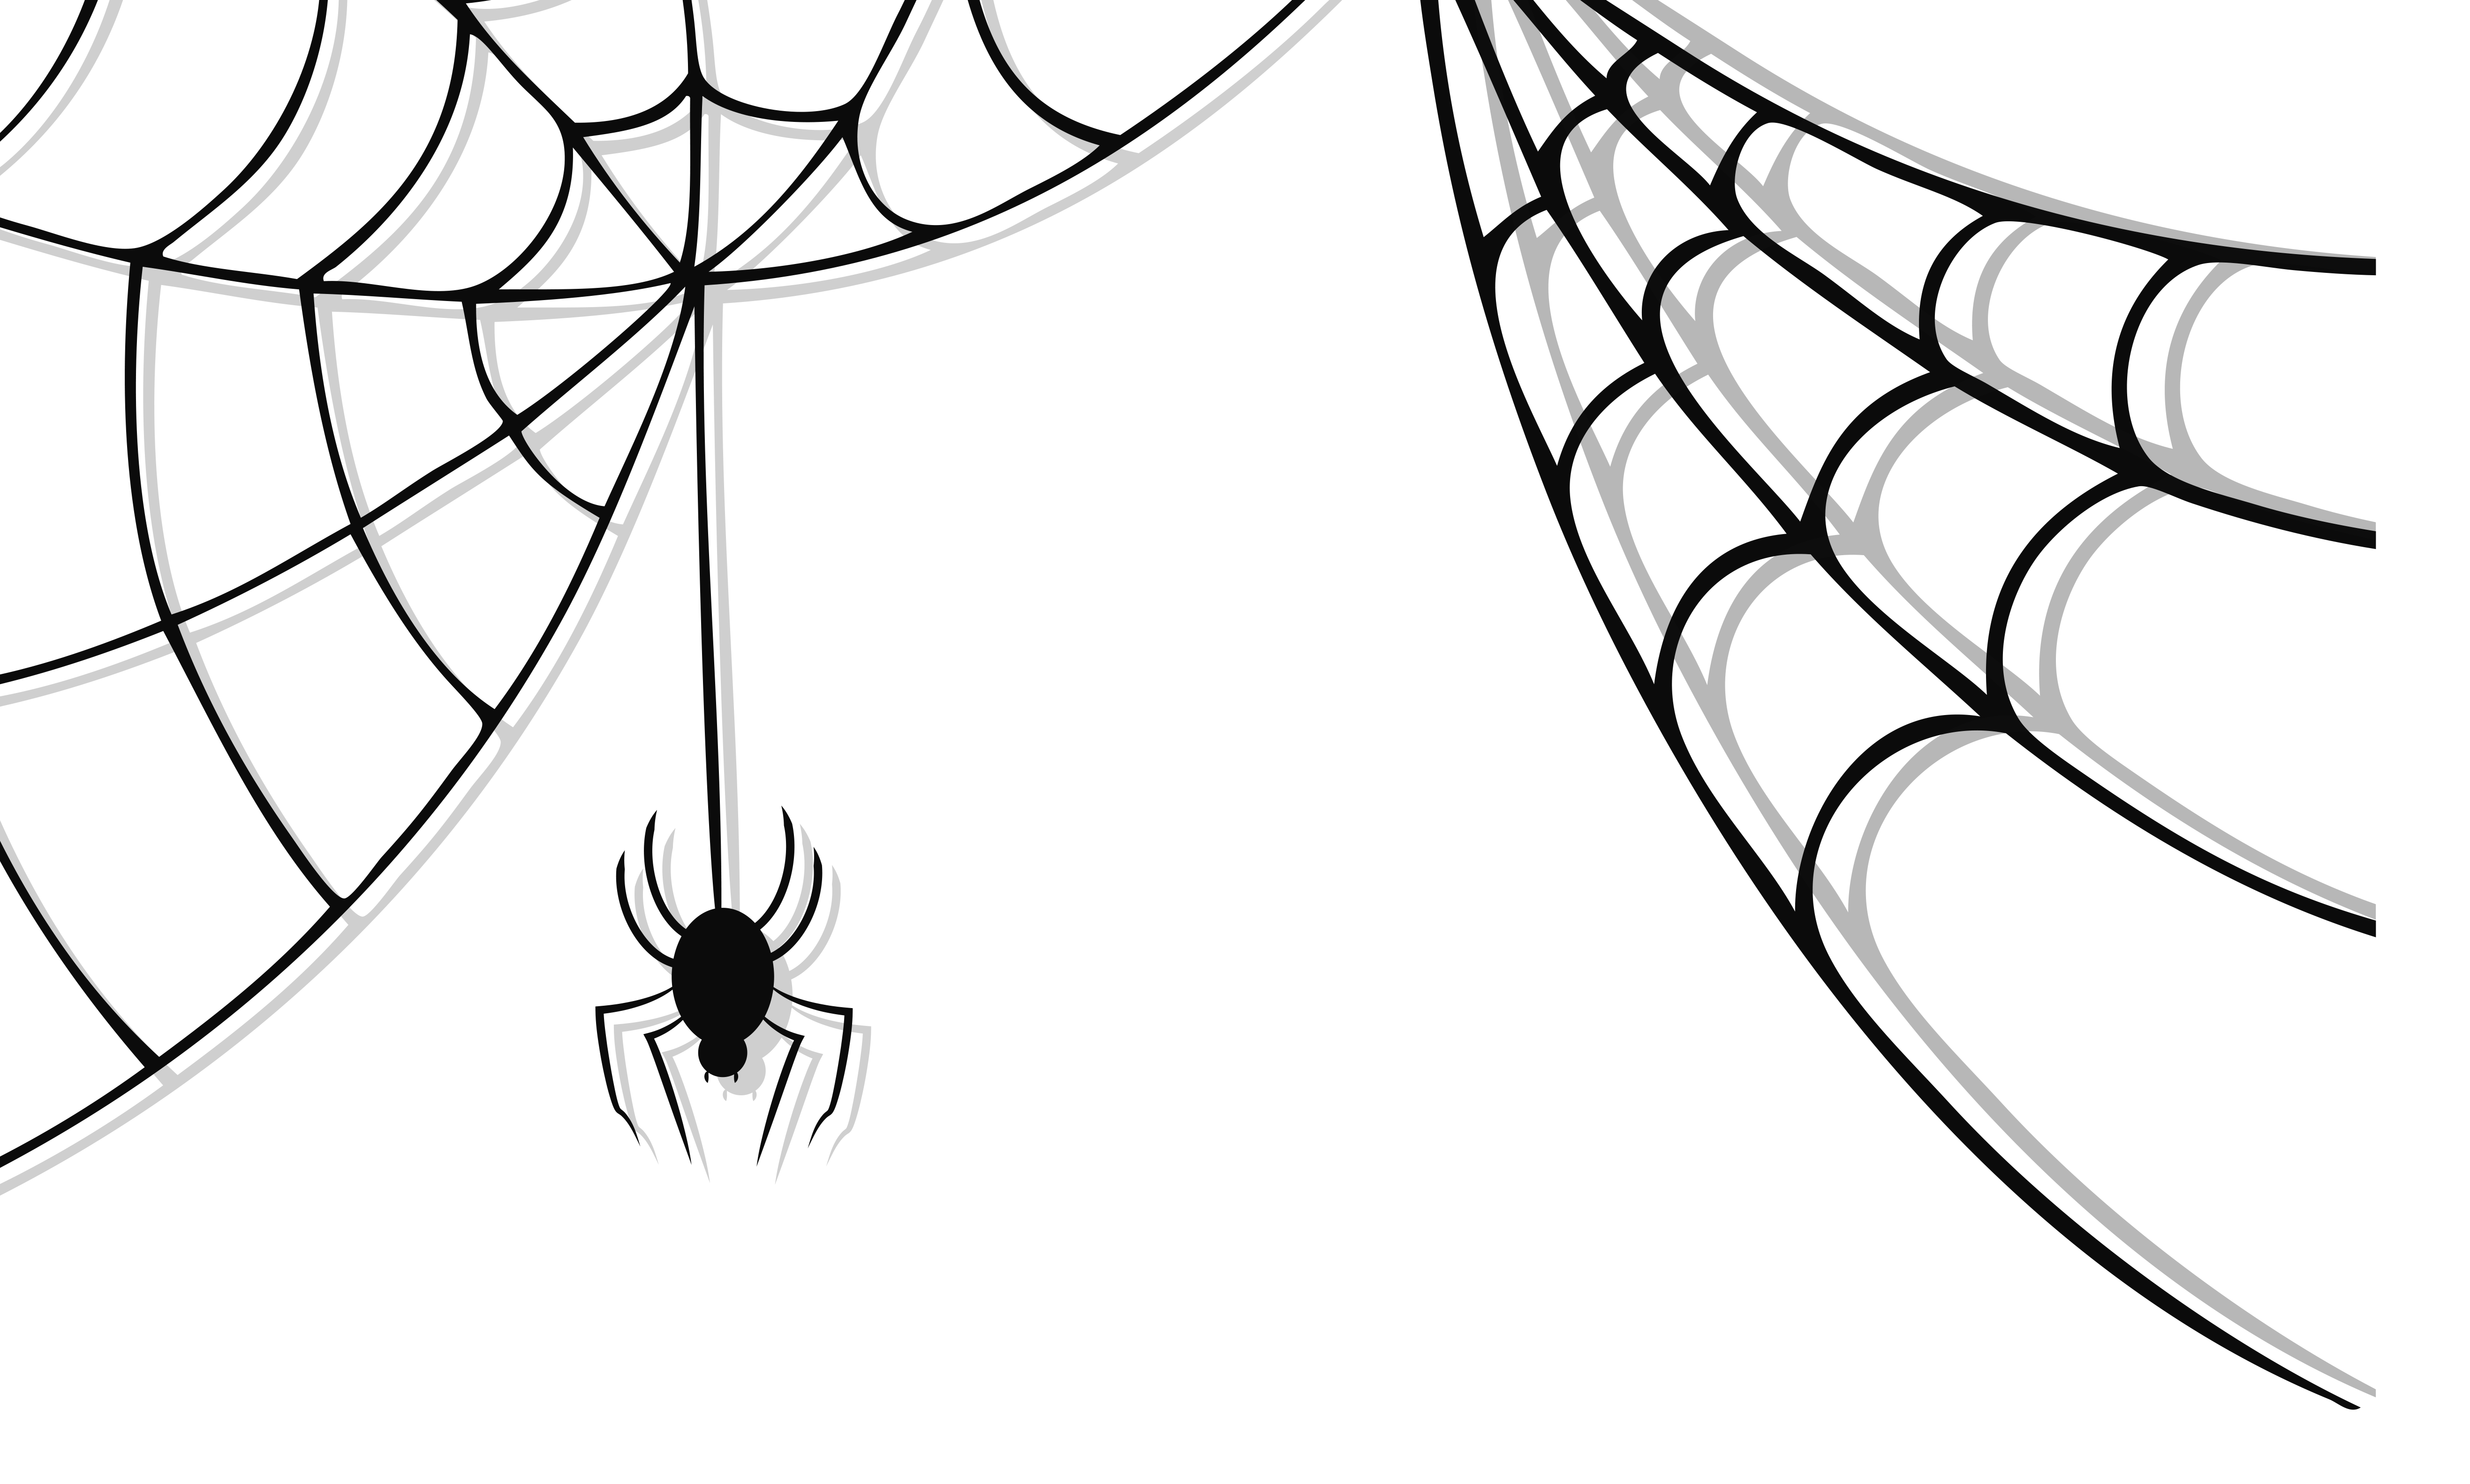 Best Spider Web